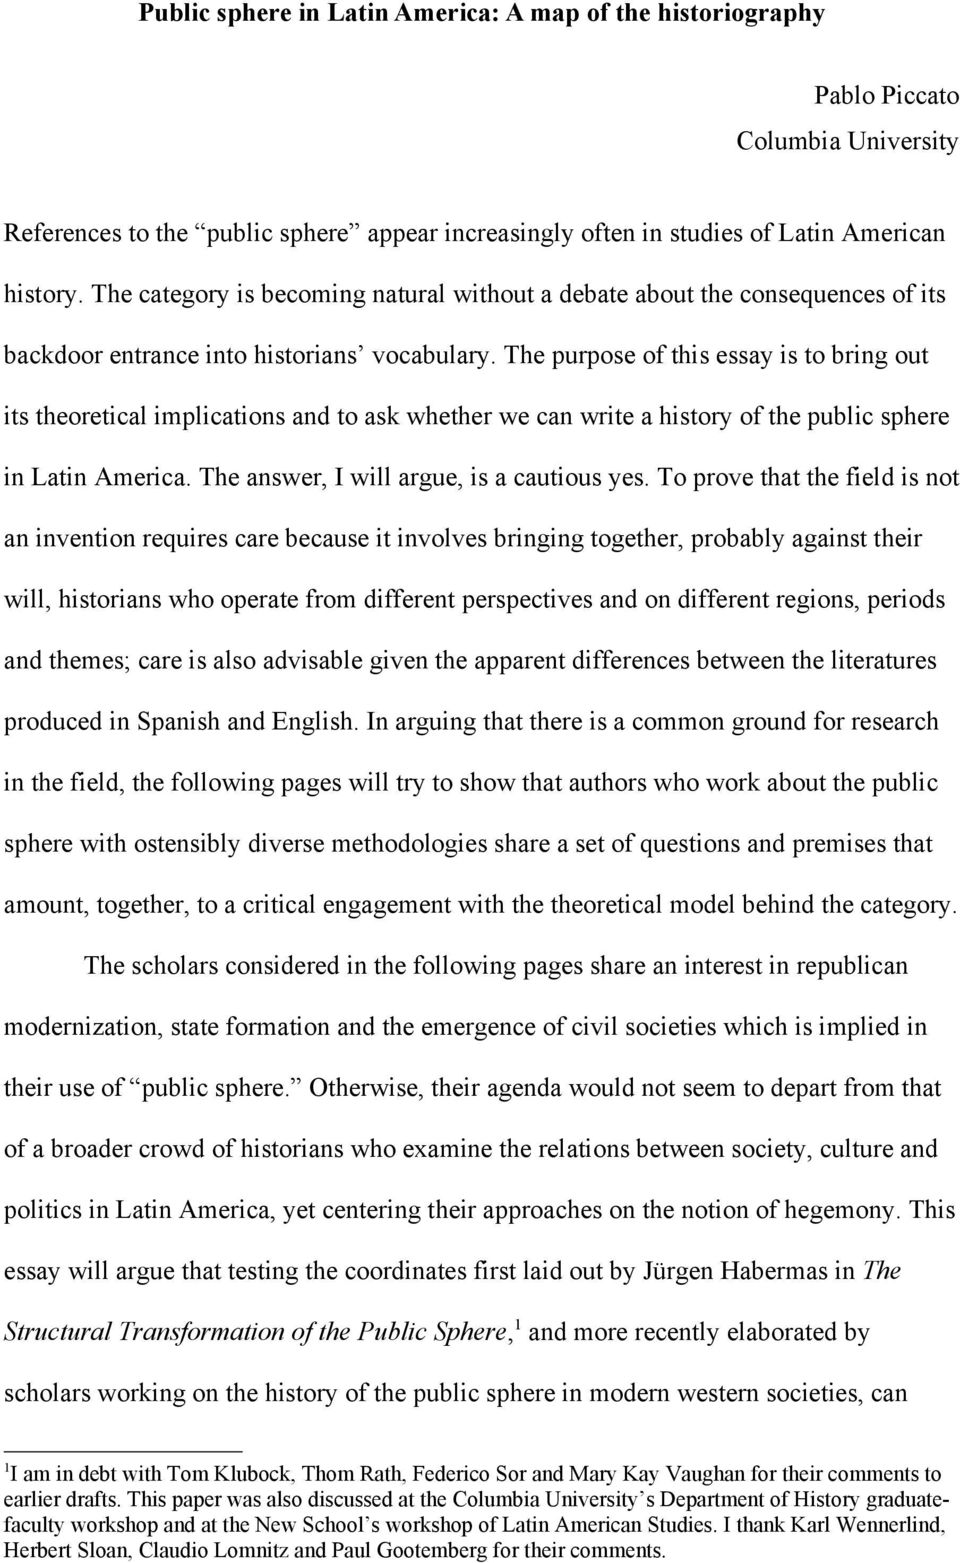 The purpose of this essay is to bring out its theoretical implications and to ask whether we can write a history of the public sphere in Latin America. The answer, I will argue, is a cautious yes.